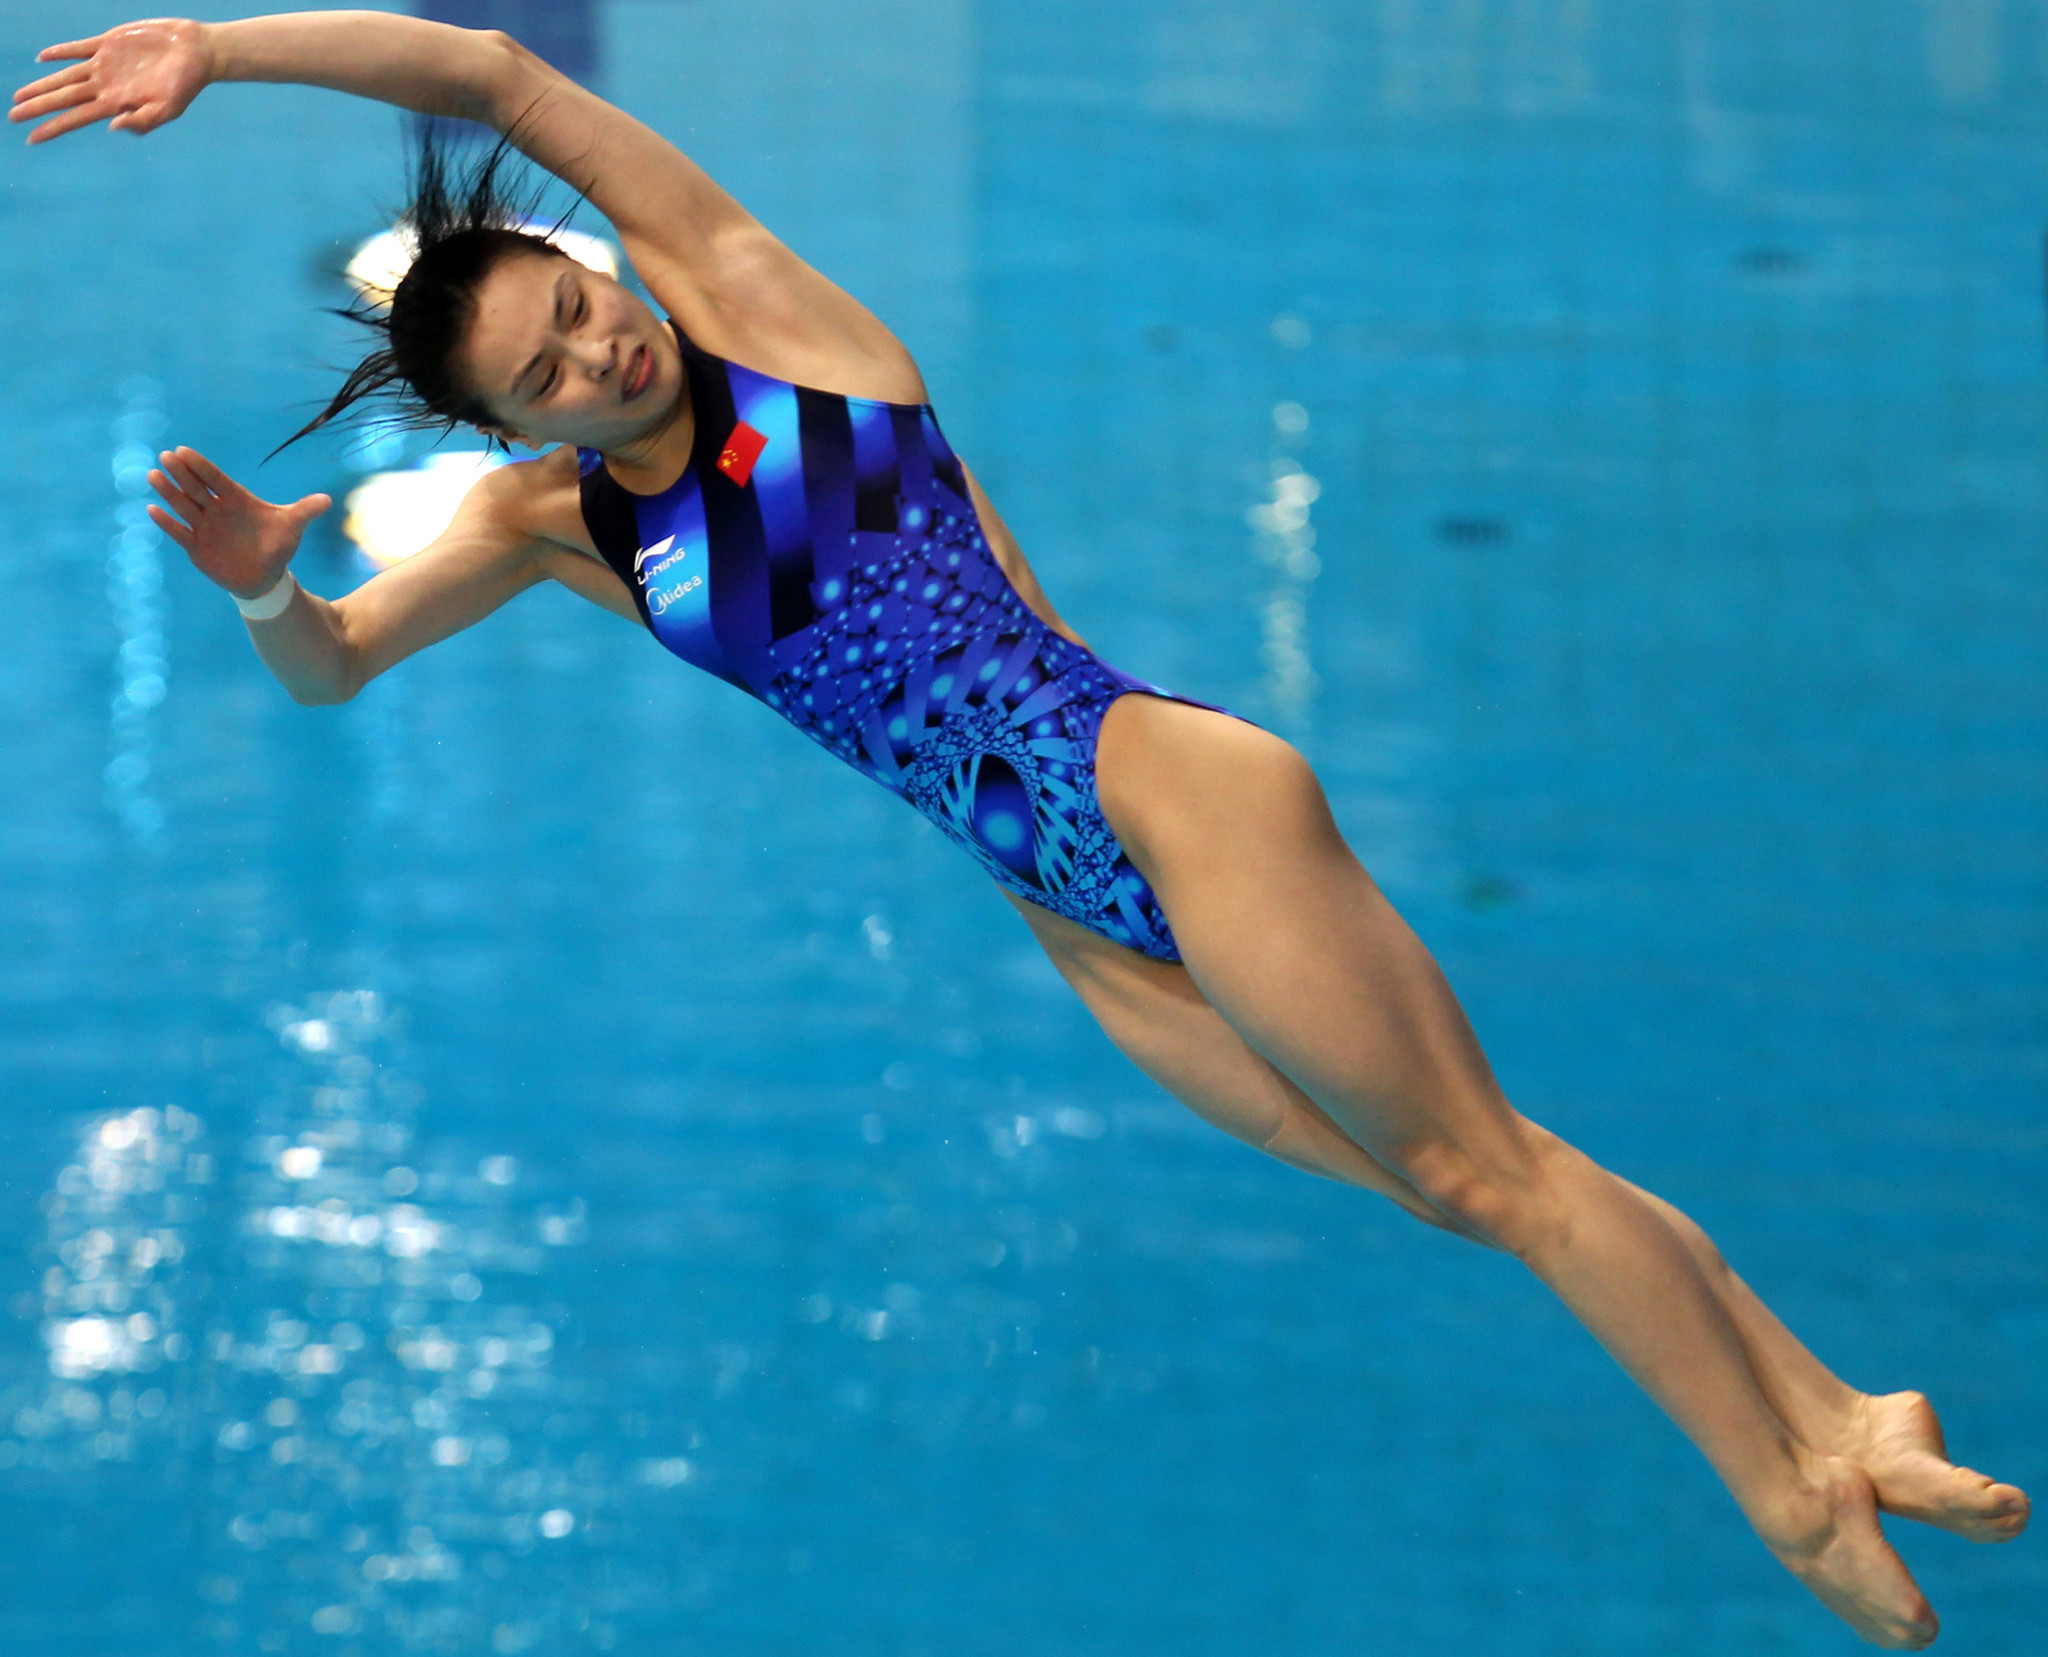 Women's diving - Chicago Tribune